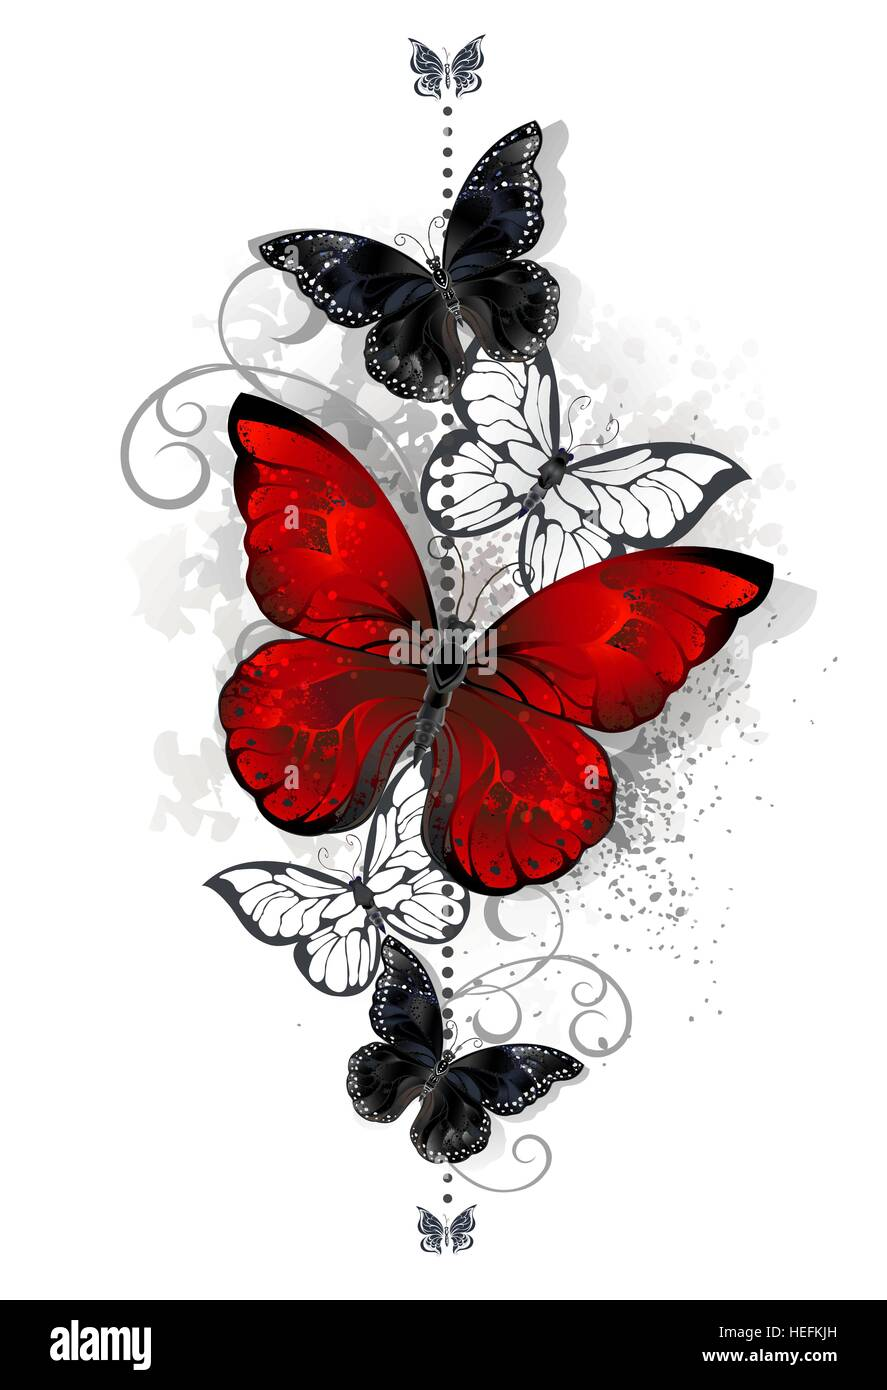 The composition of a bright red and black butterfly